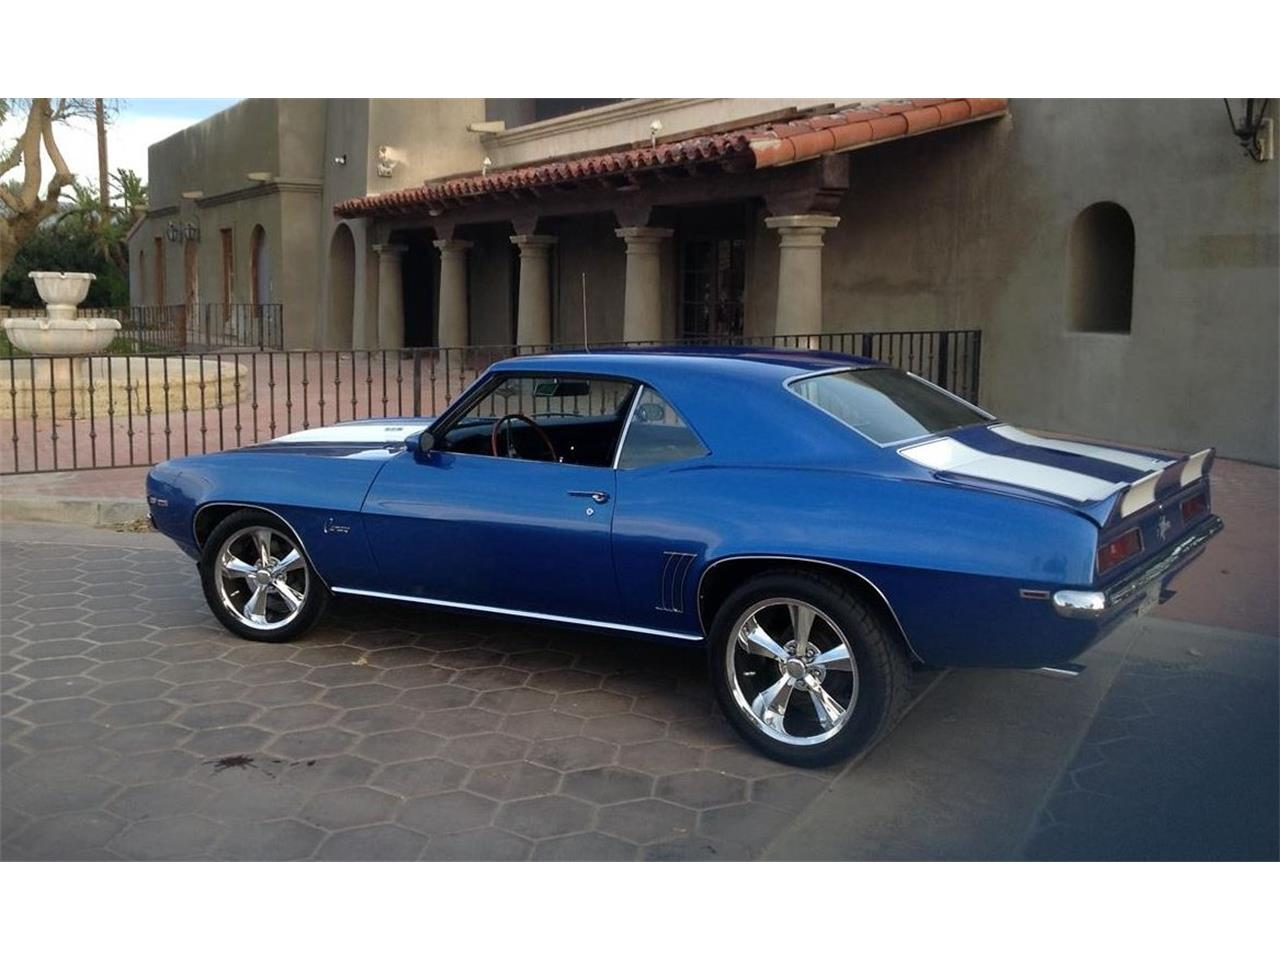 for sale 1969 chevrolet camaro z28 in indio california. Cars Review. Best American Auto & Cars Review